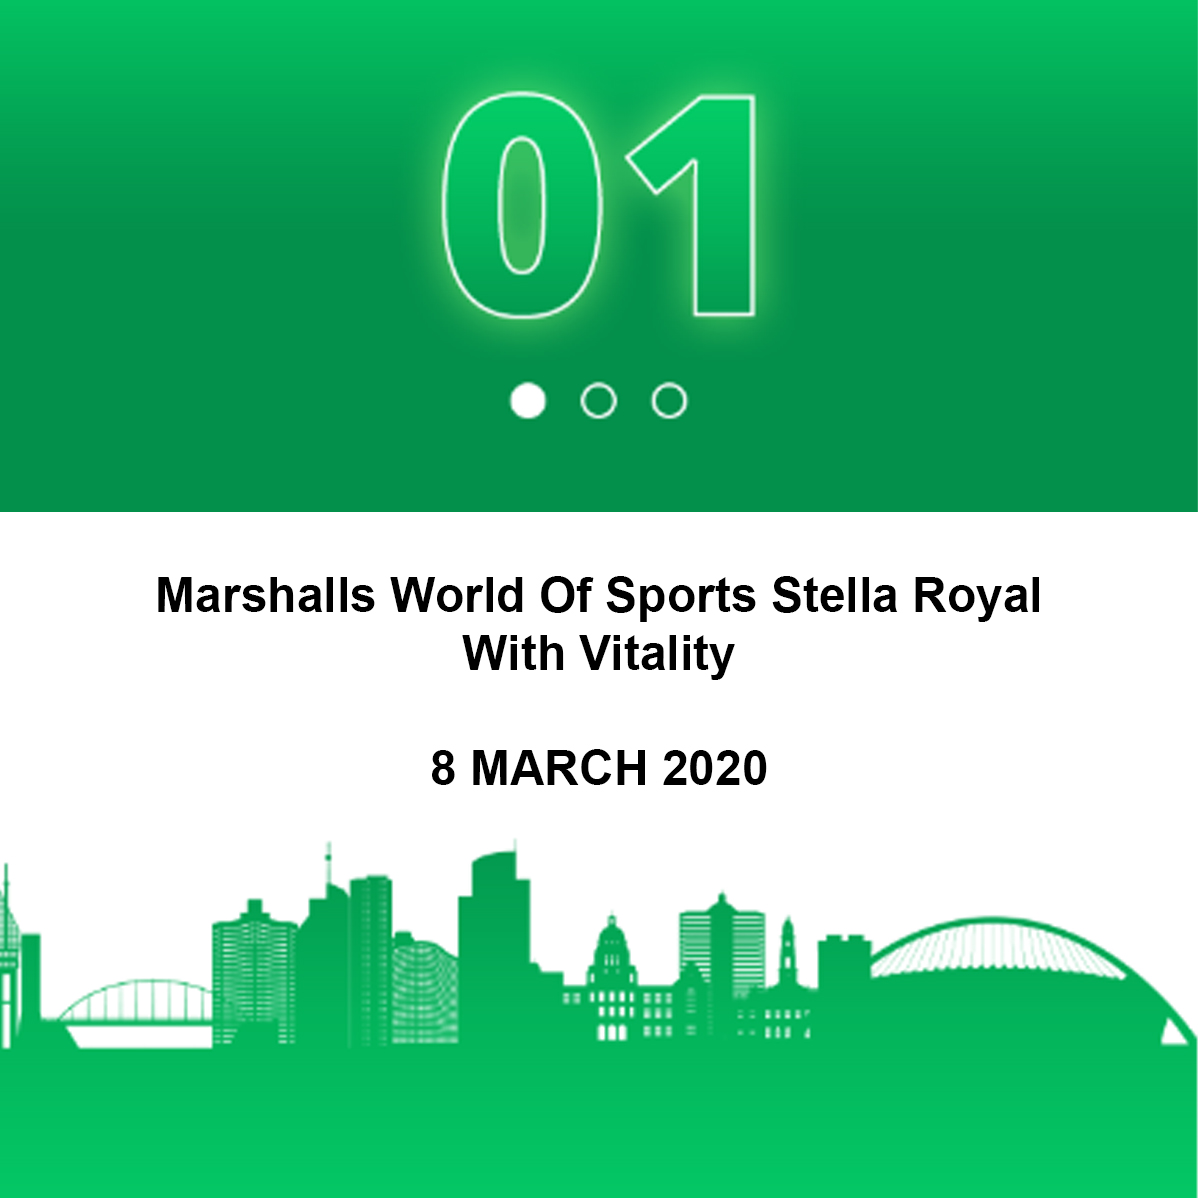 Marshalls World Of Sports Stella Royal With Vitality